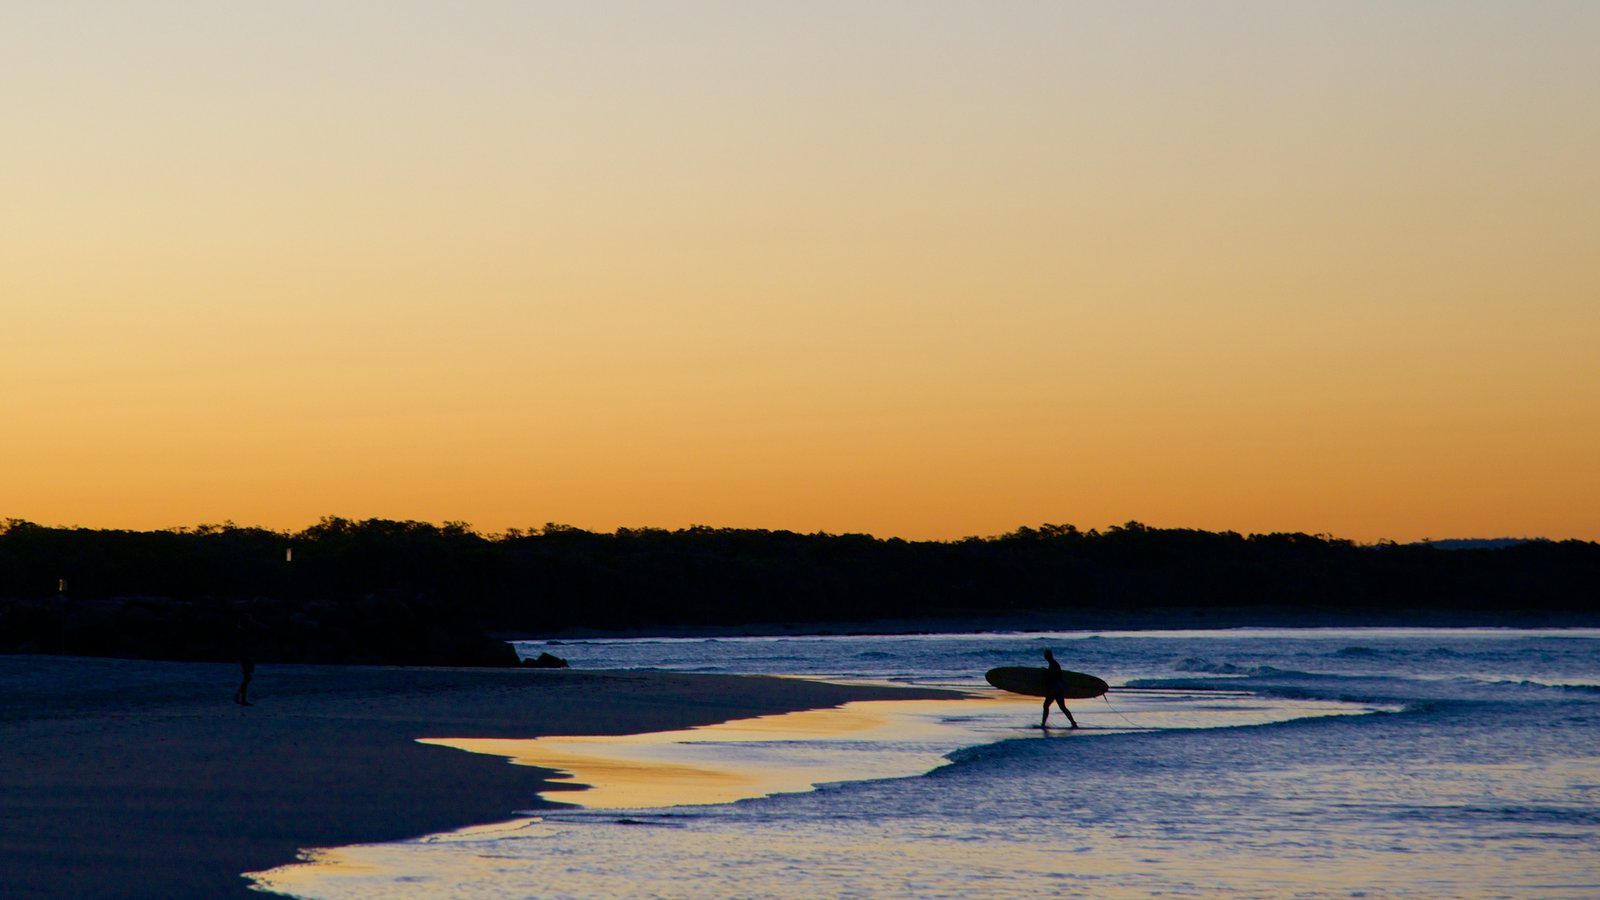 Noosa Beach showing surfing, a sandy beach and a sunset